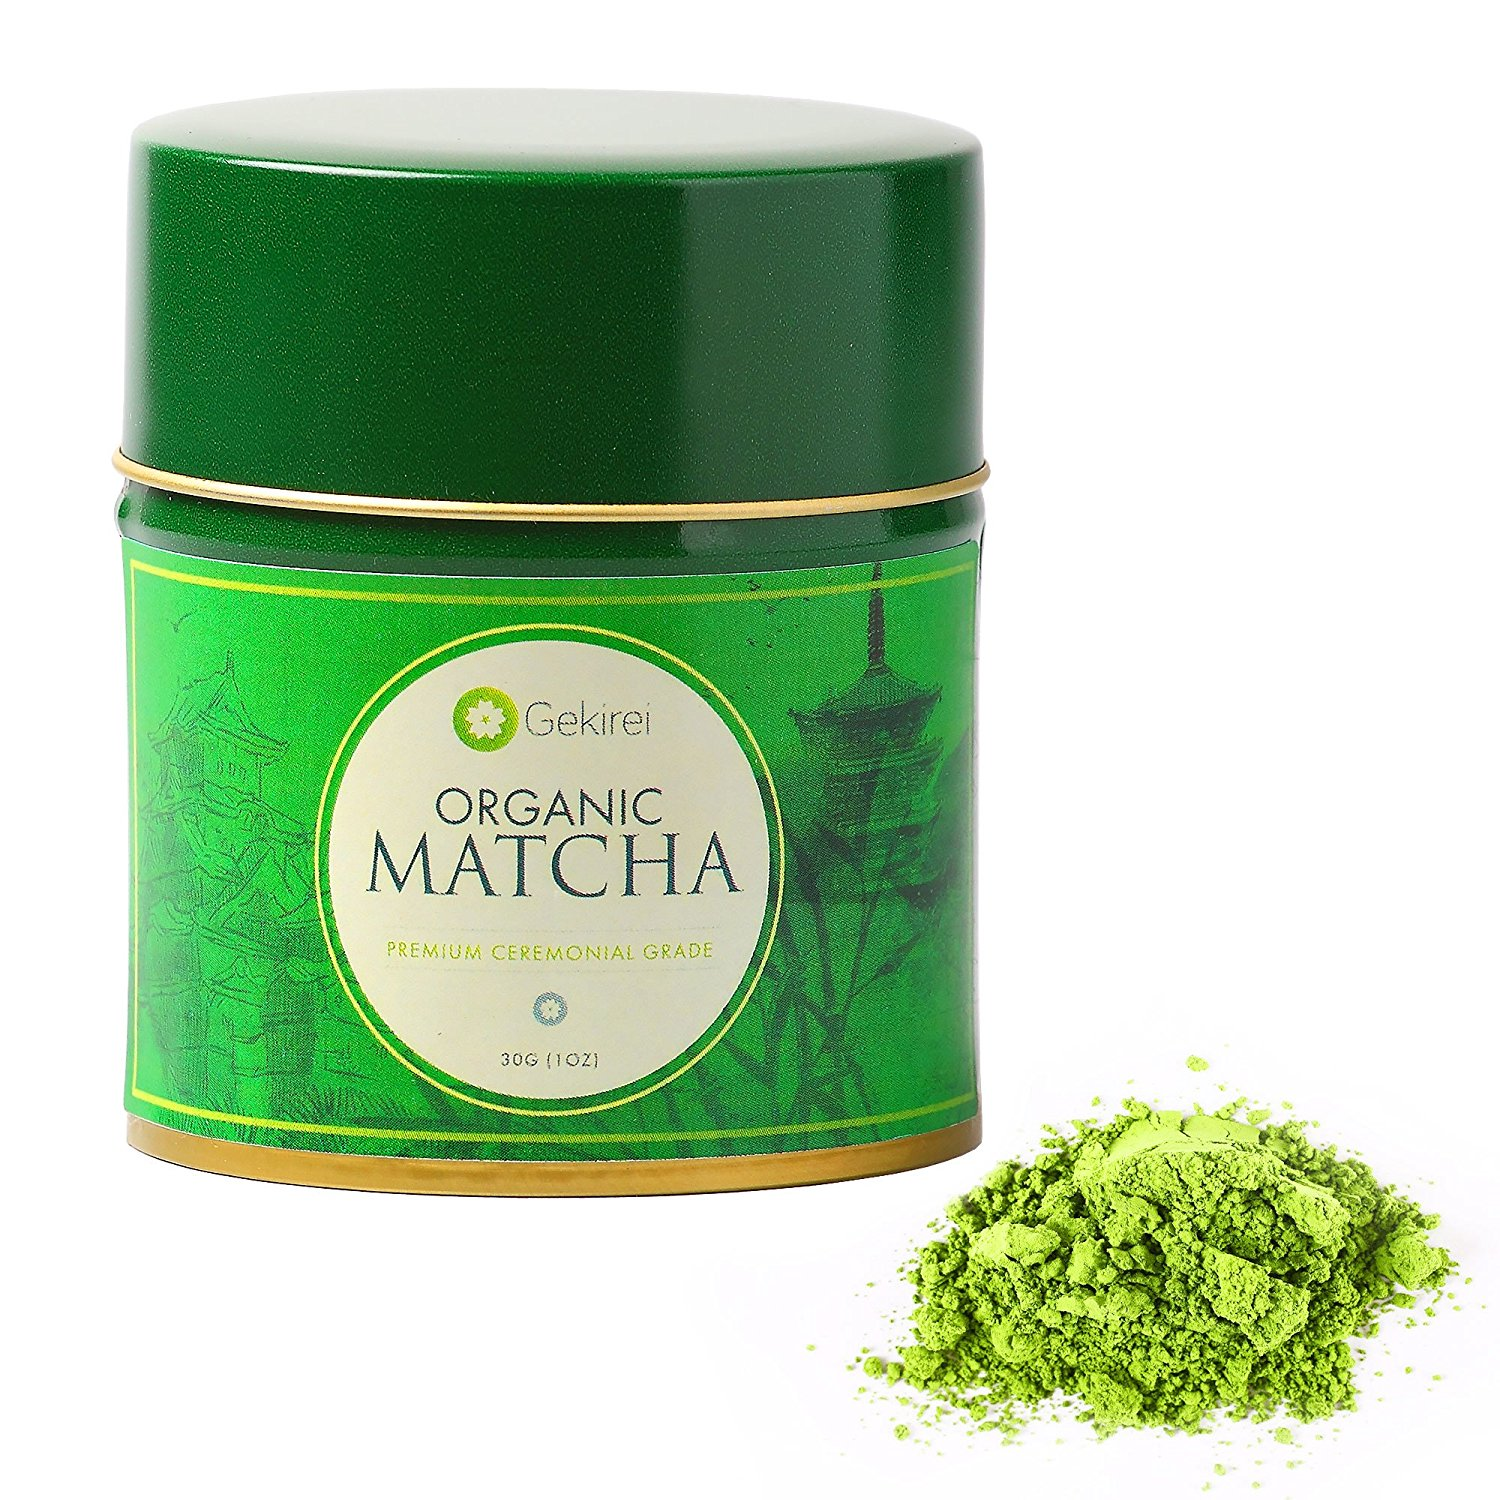 Japanese Matcha Green Tea Powder – Premium Ceremonial Grade - USDA Organic Antioxidant